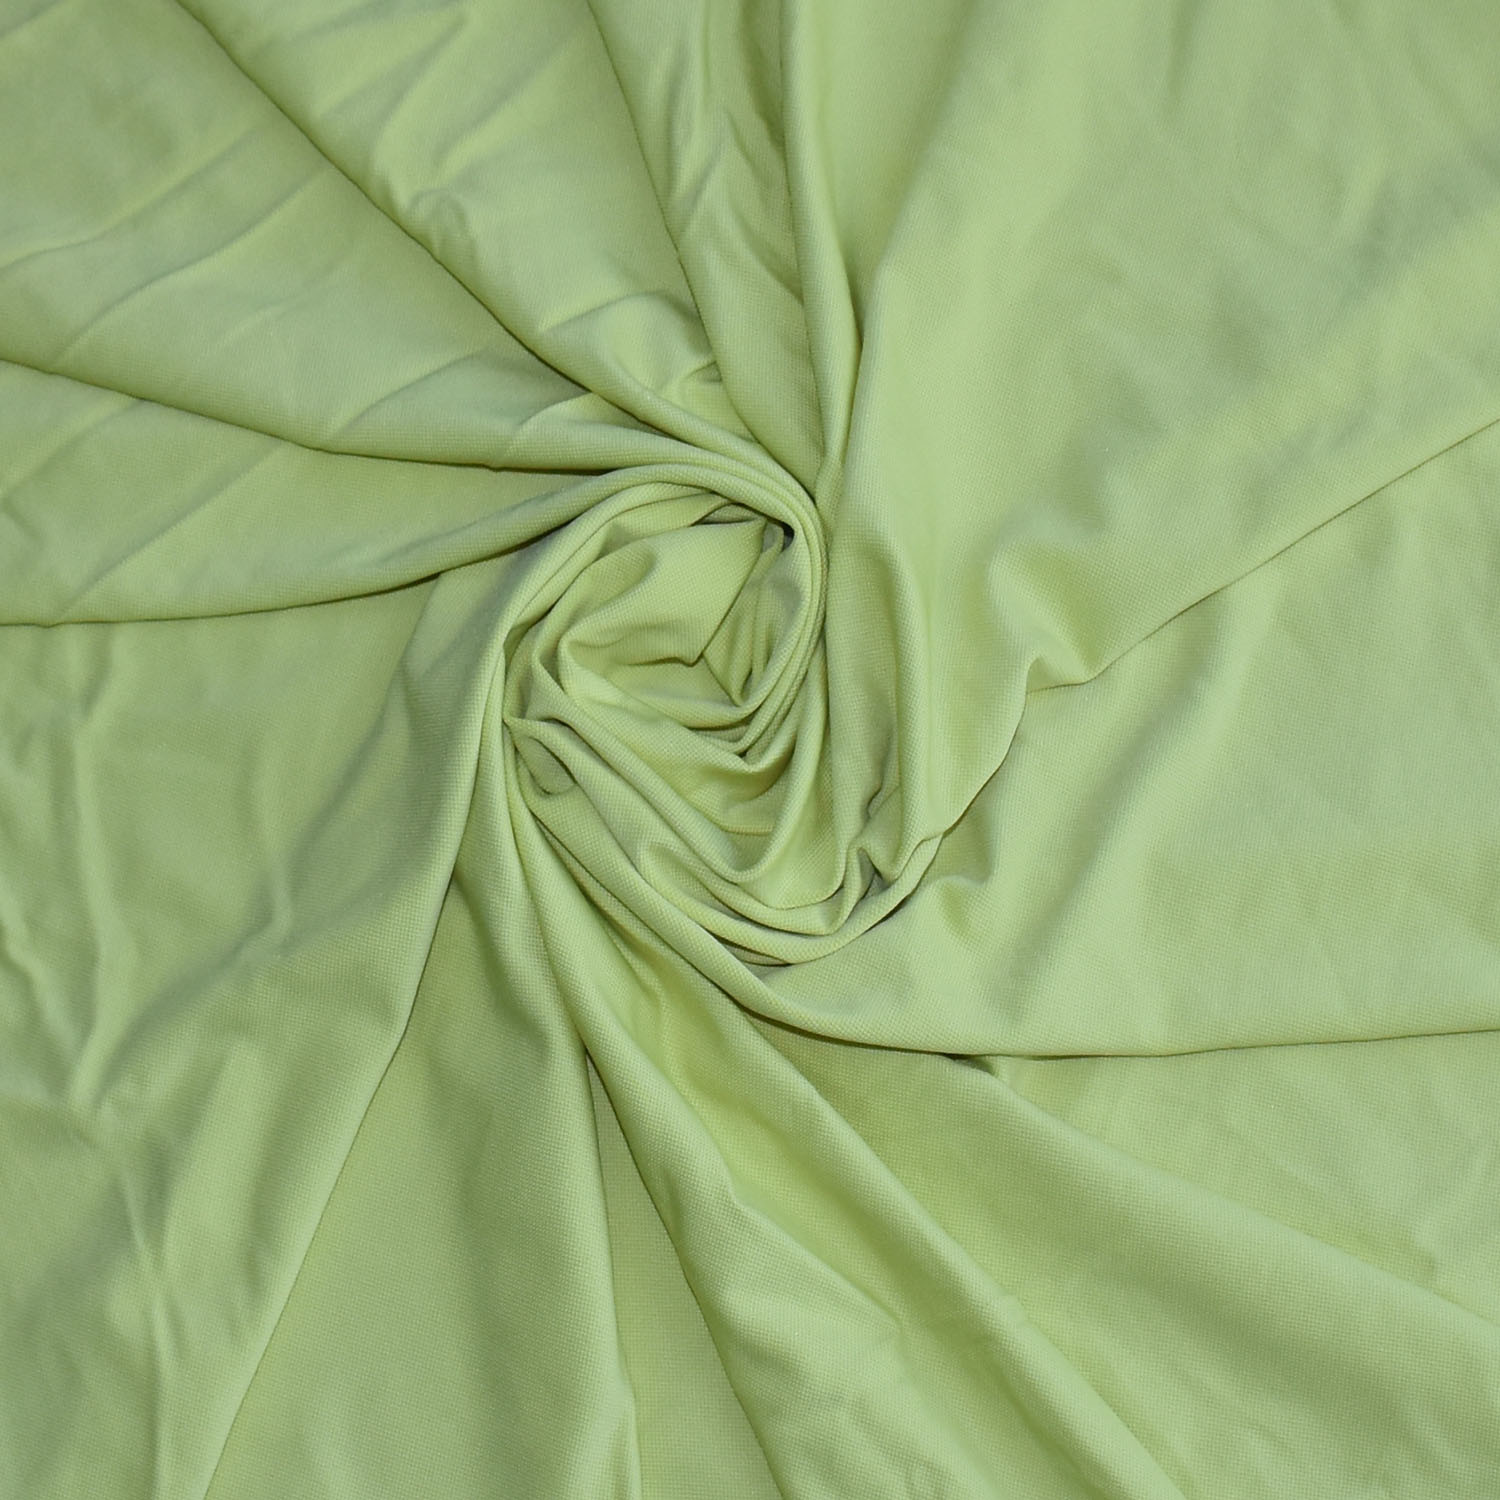 230GSM Nylon/Spandex Pique Fabric for Clothing